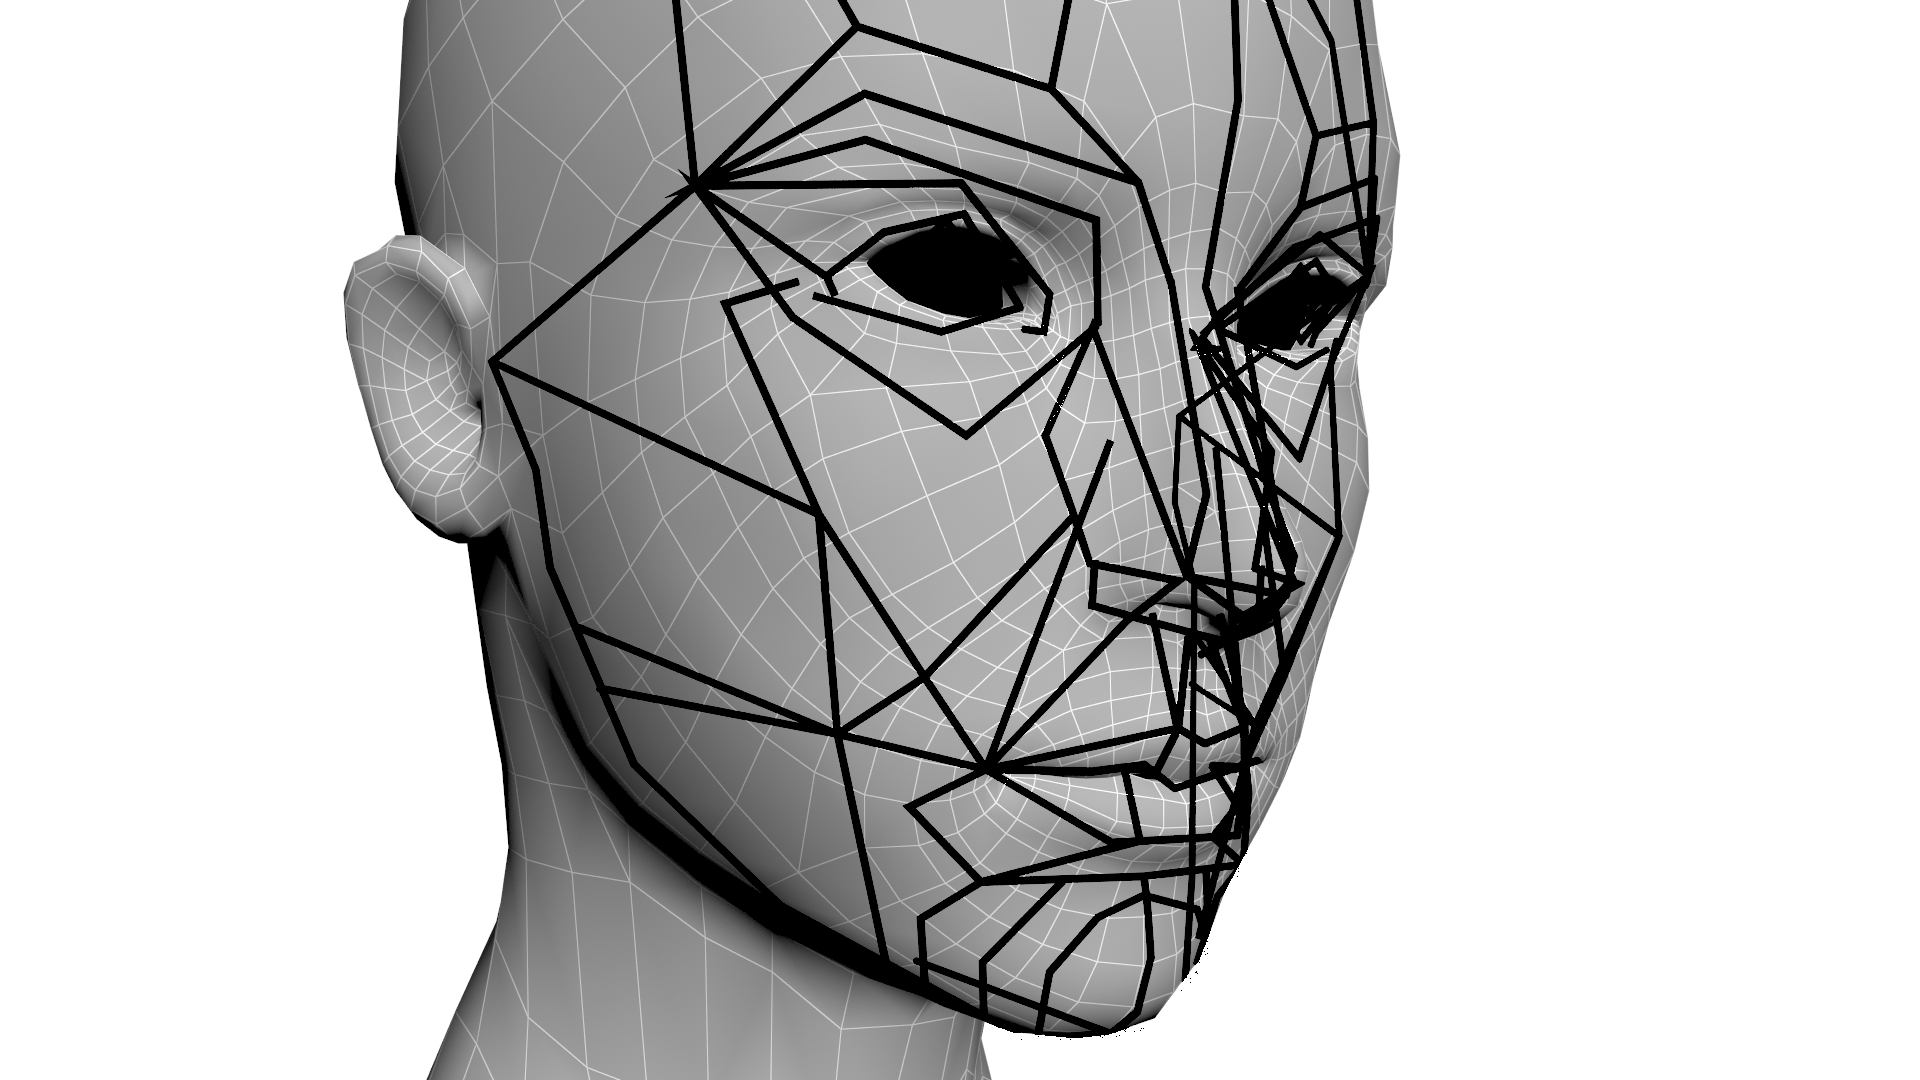 The Golden Ratio In 3d Human Face Modeling Valentin Schwind Human Face Face 3d Human